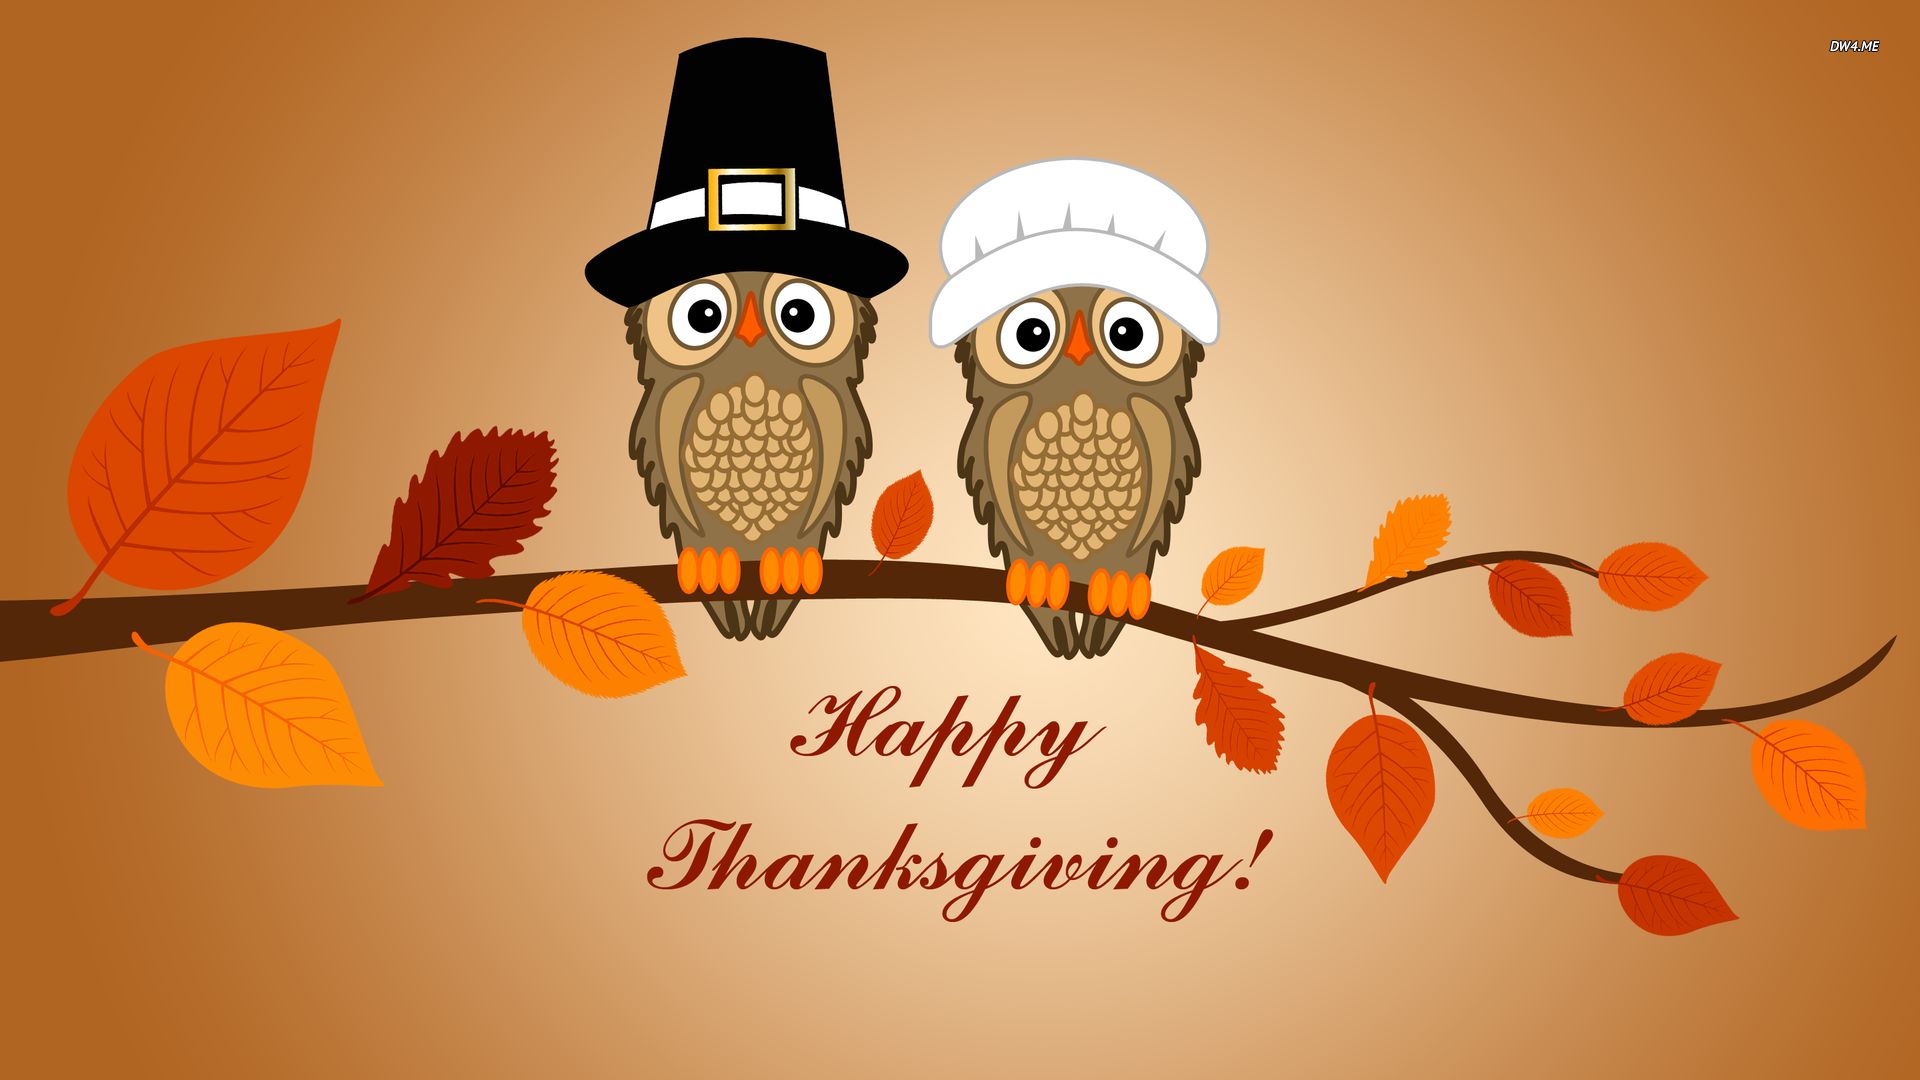 Happy Thanksgiving to our American Members!